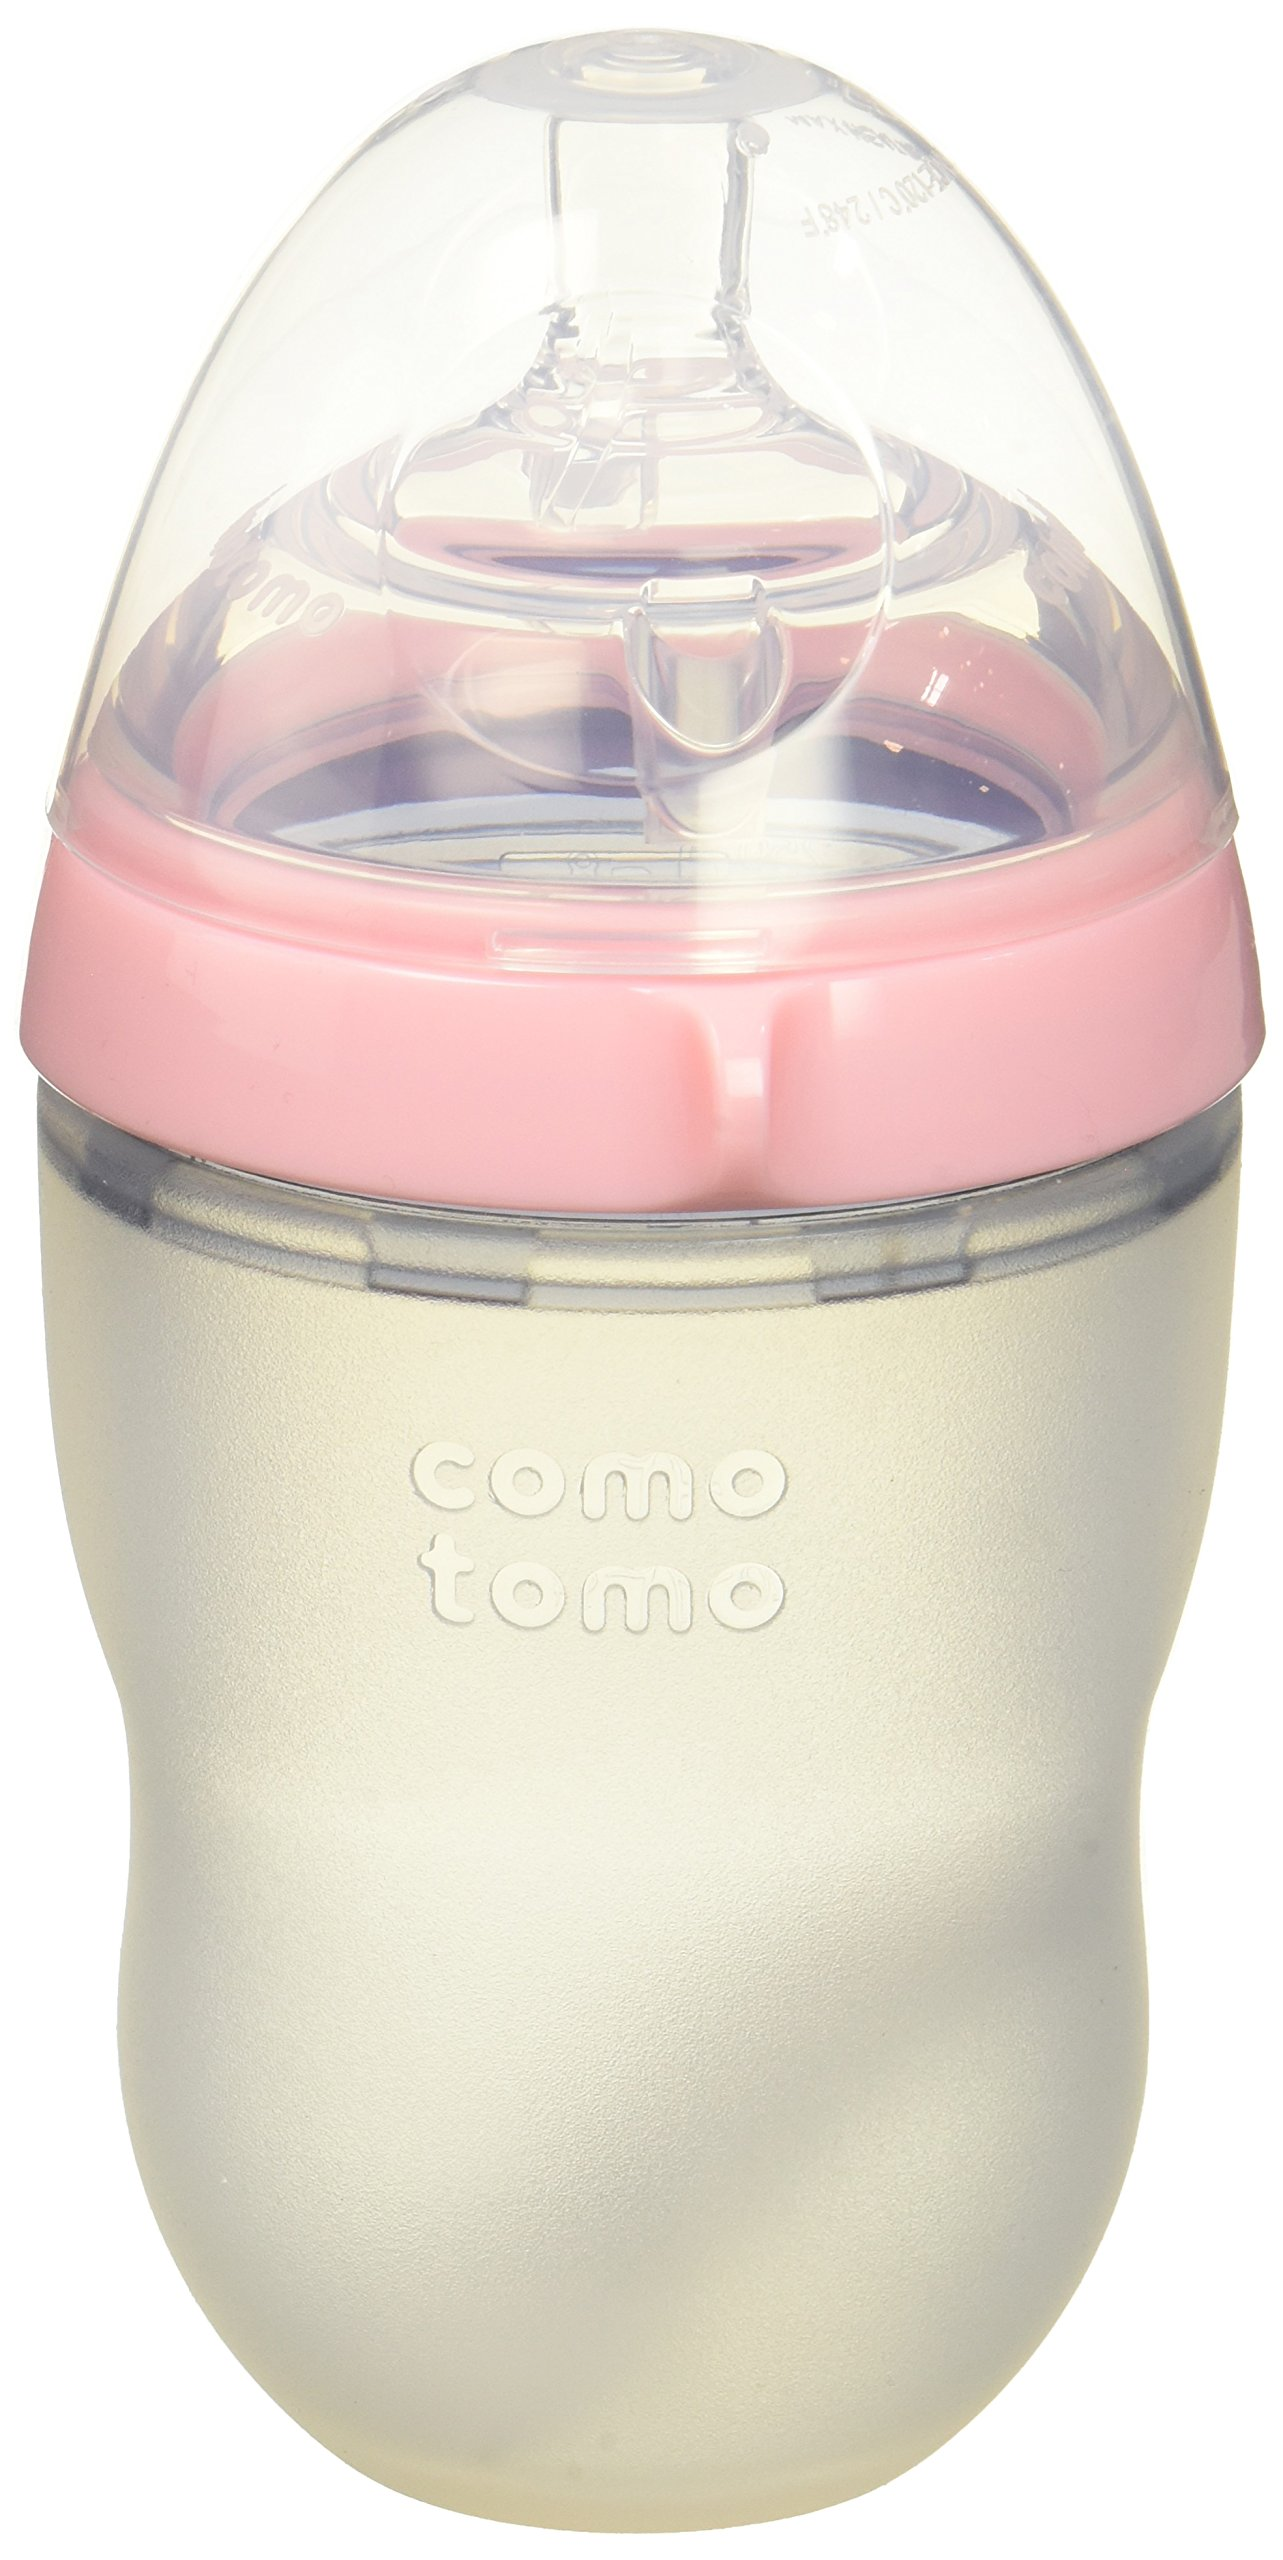 Comotomo Natural Feel Bundle - 2 Items:  8 Ounce Baby Bottle Pink, Extra Pack Medium Flow Nipples by Comotomo